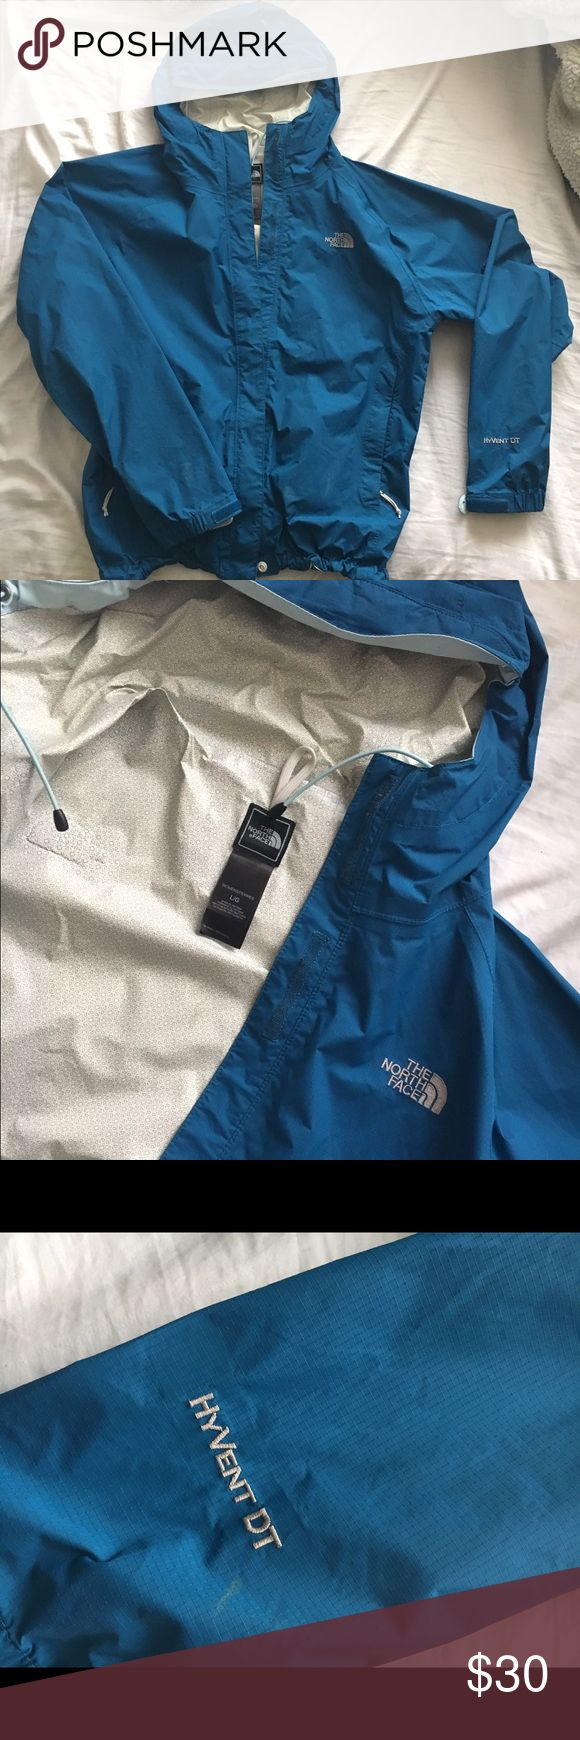 Northface blue water resistant jacket This jacket is in great condition,its only been worn a couple if times. It is water resistant and is perfect for wearing over sweatshirts. Willing to negotiate the price(: The North Face Jackets & Coats